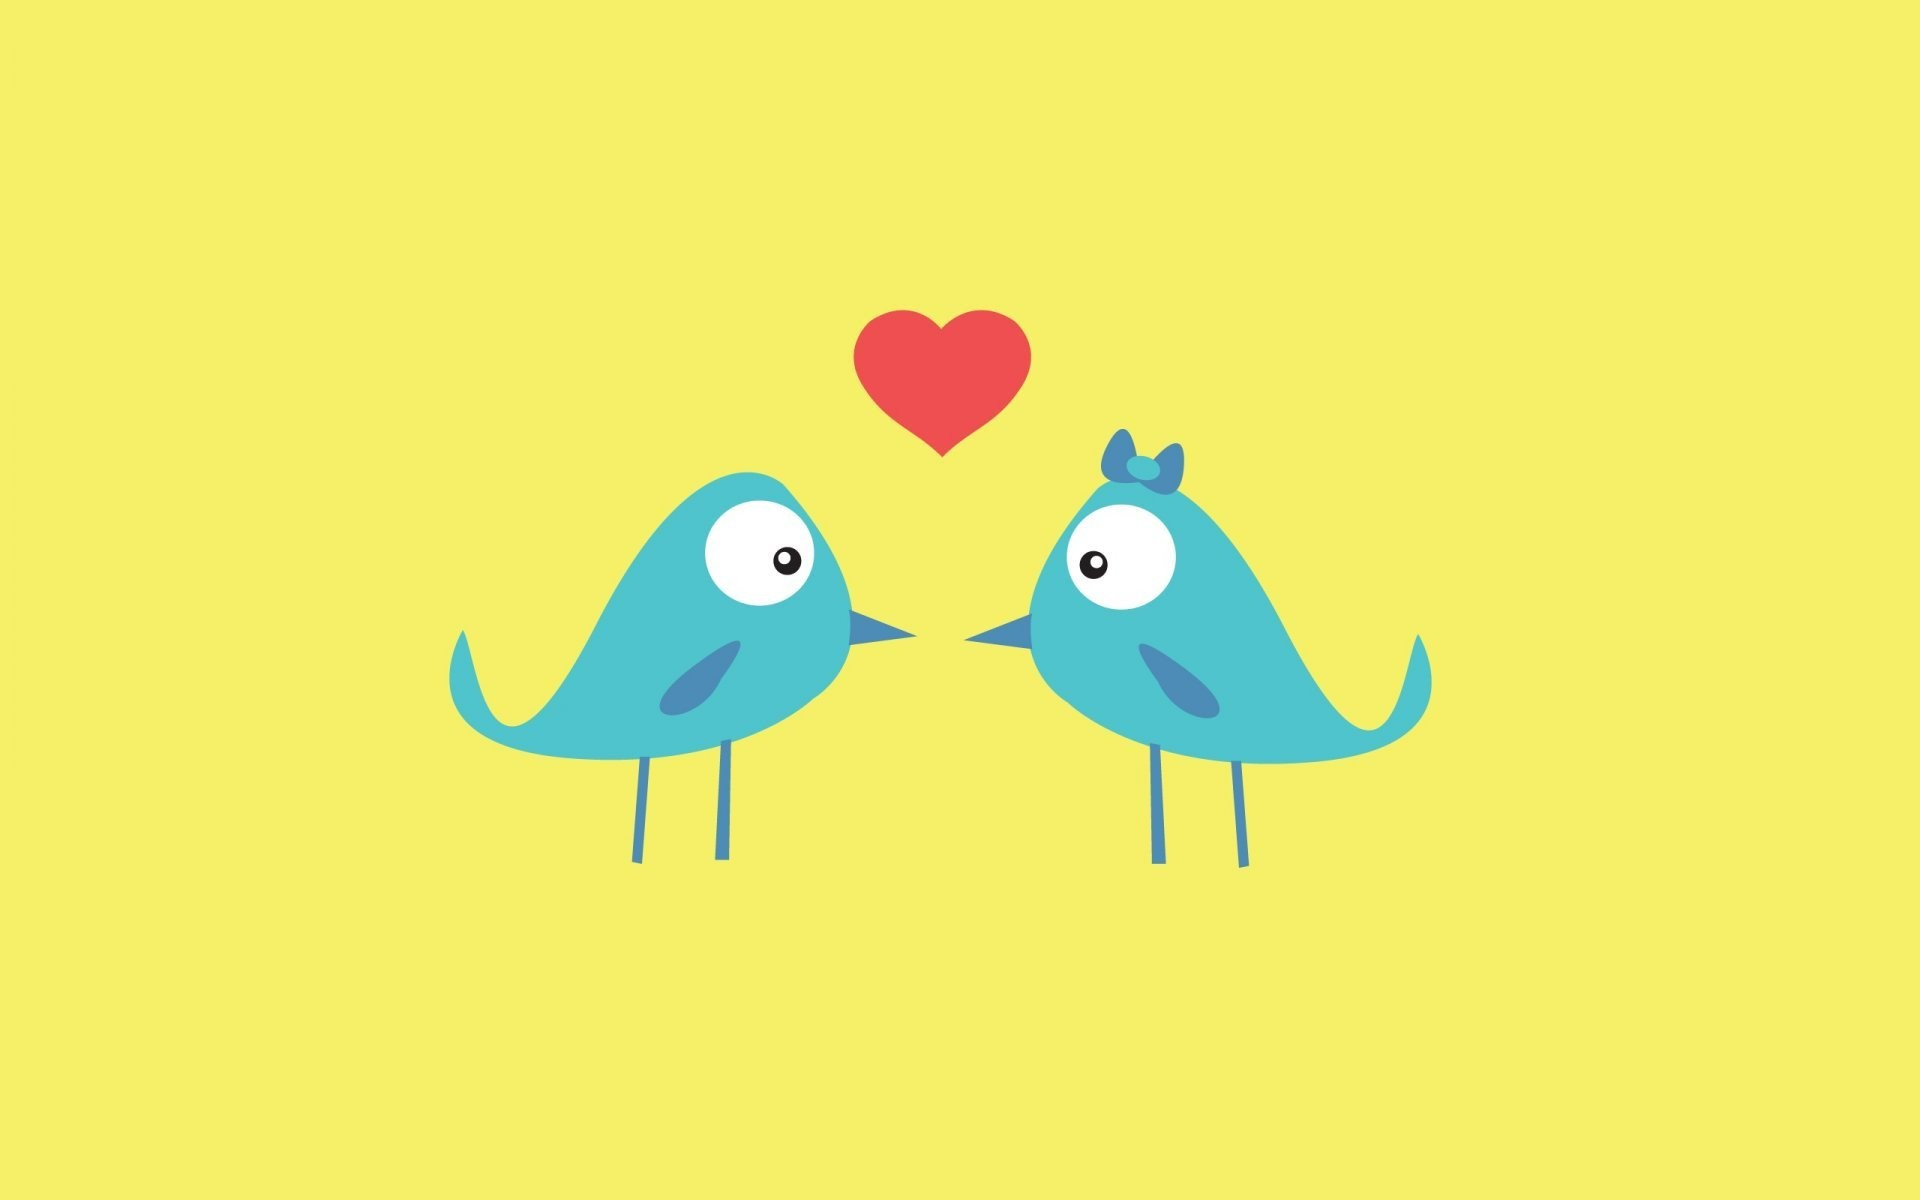 textures birds birds beak feathers cartoon blue heart hearts love love pink background  wallpaper